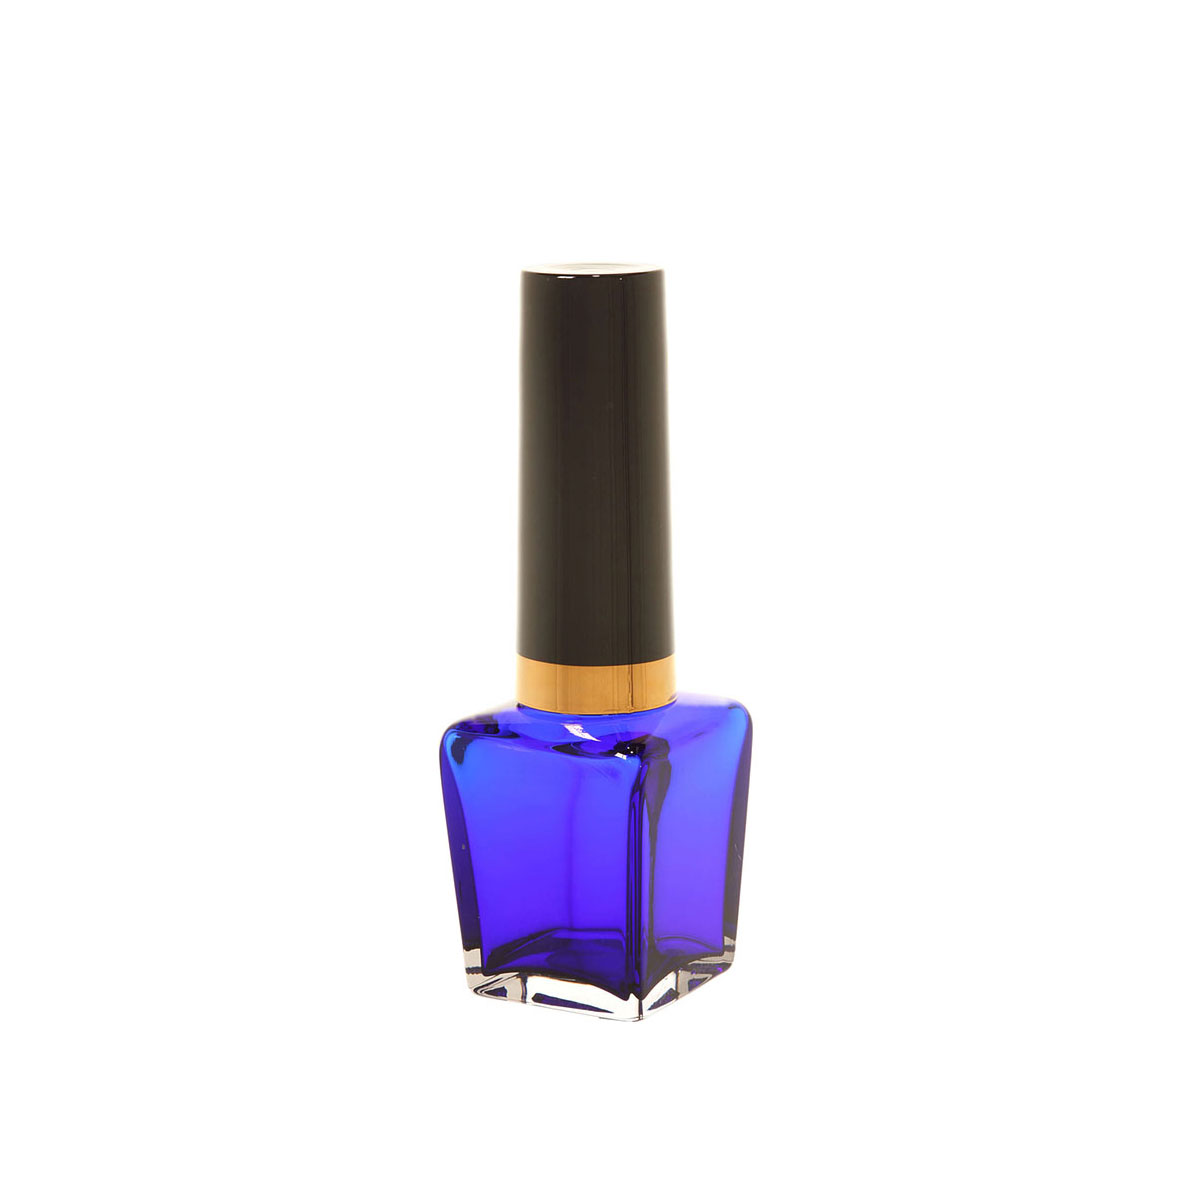 Kosta Boda Art Glass, Asa Jungnelius Make Up Square Blue Nail Polish, Limited Edition of 20